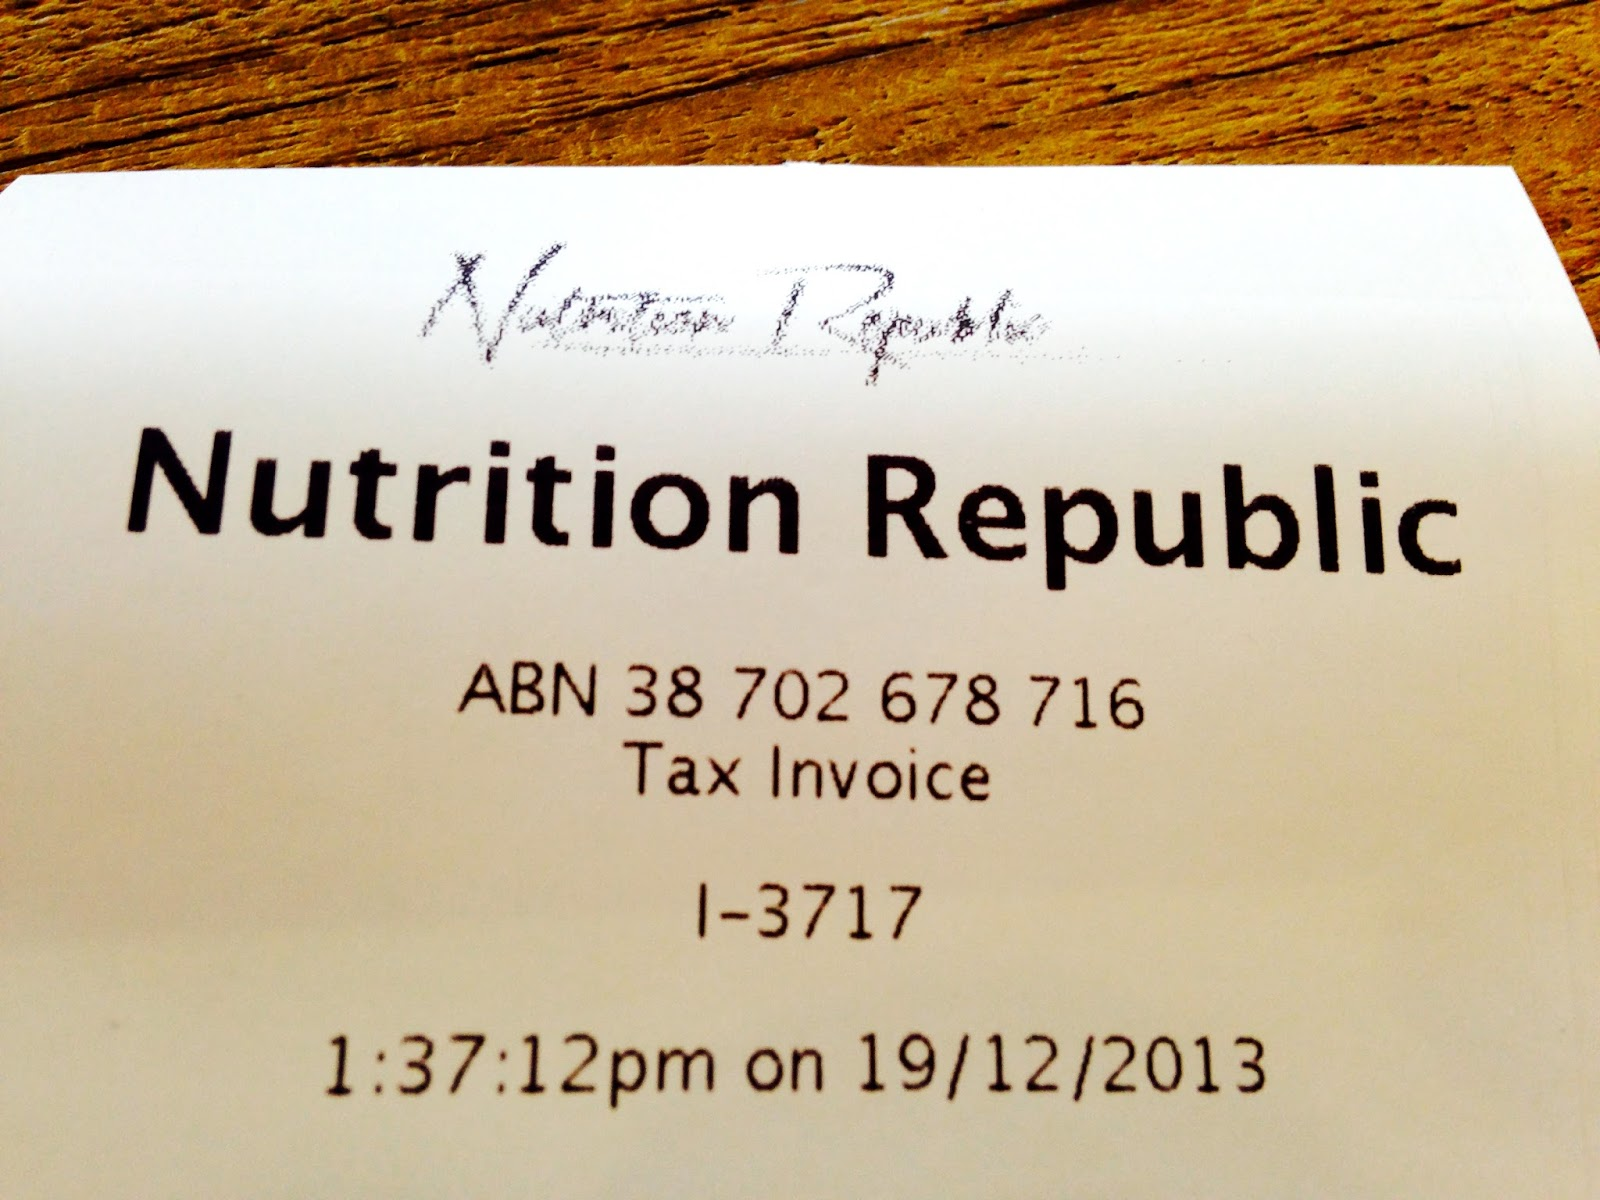 Nutrition Republic